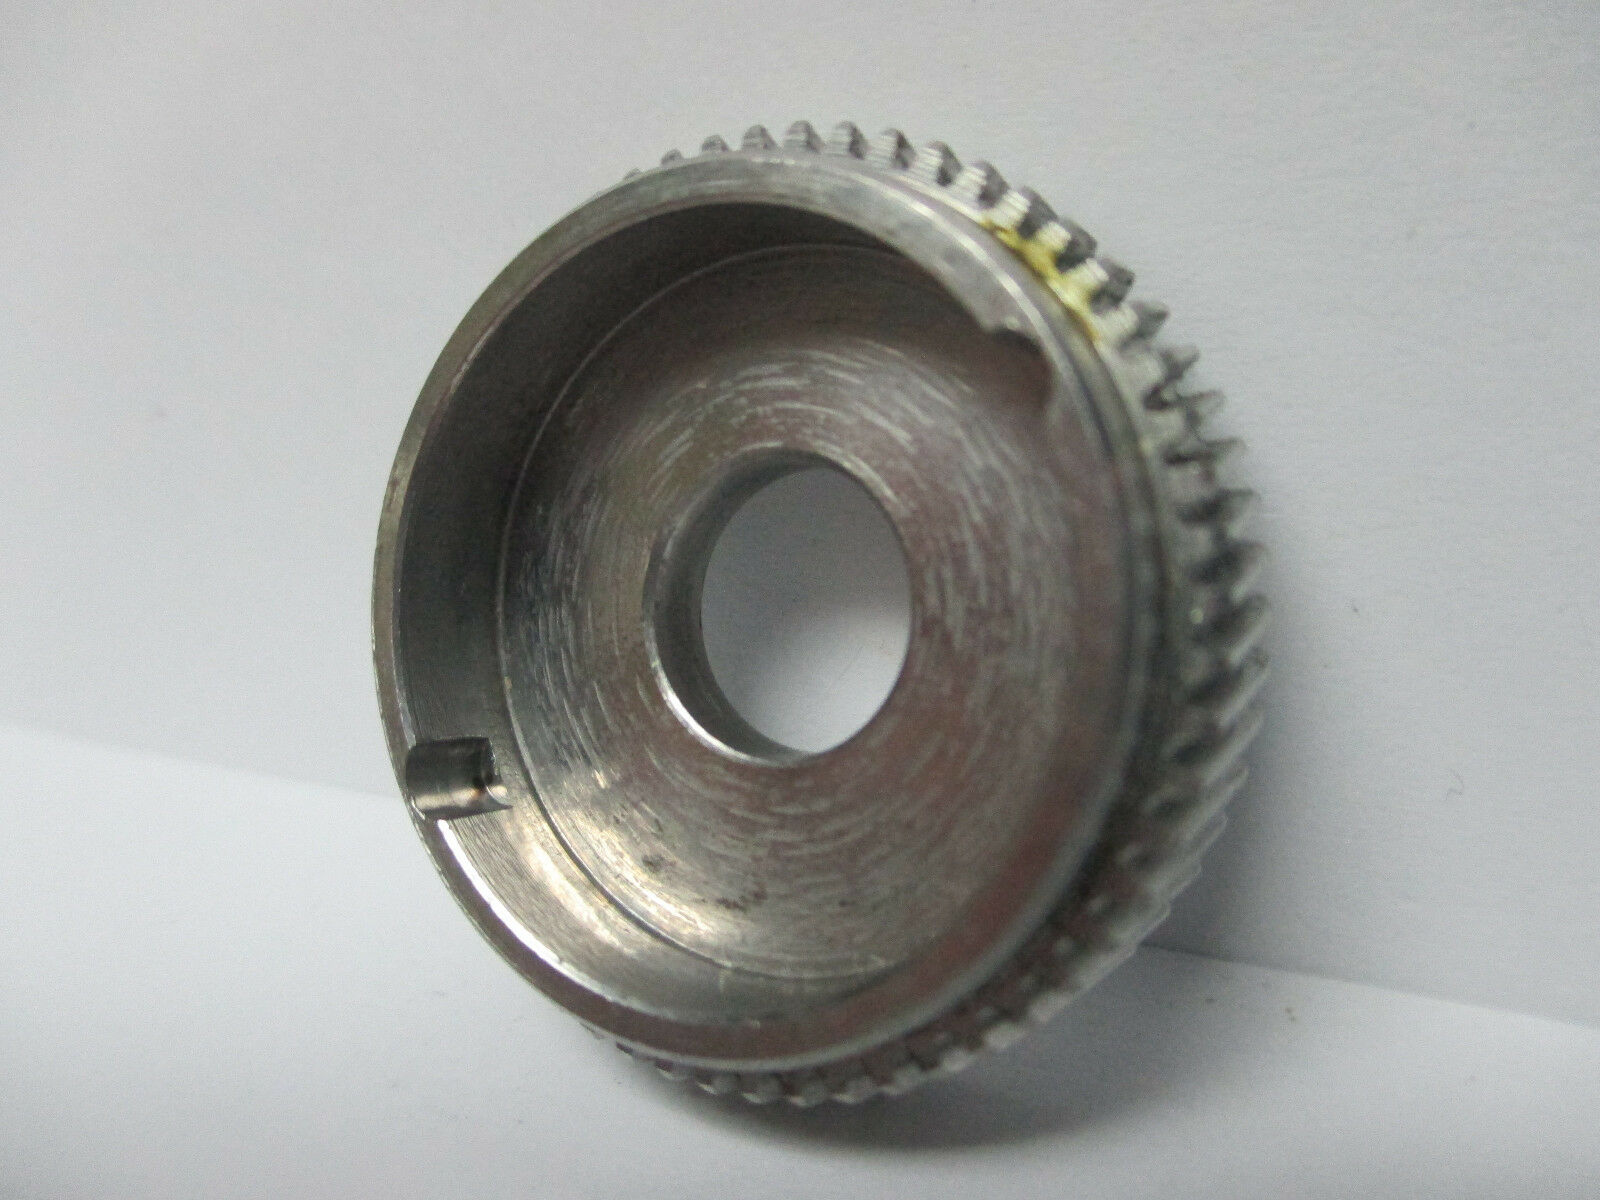 NEW NEWELL CONVENTIONAL REEL PART - G 229 F - Main Gear